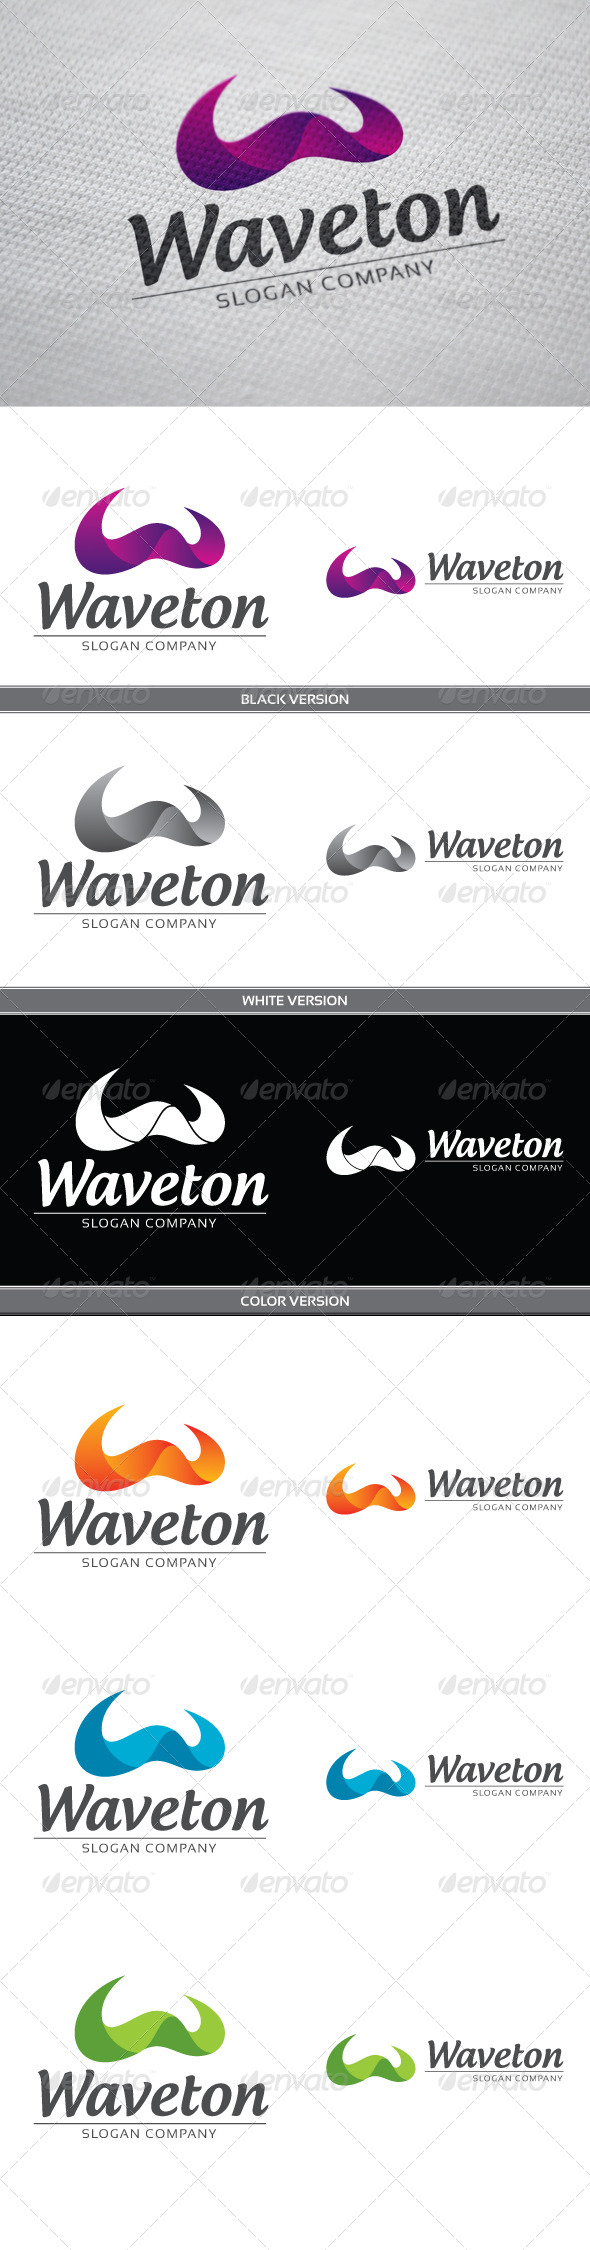 GraphicRiver Waveton 4419374